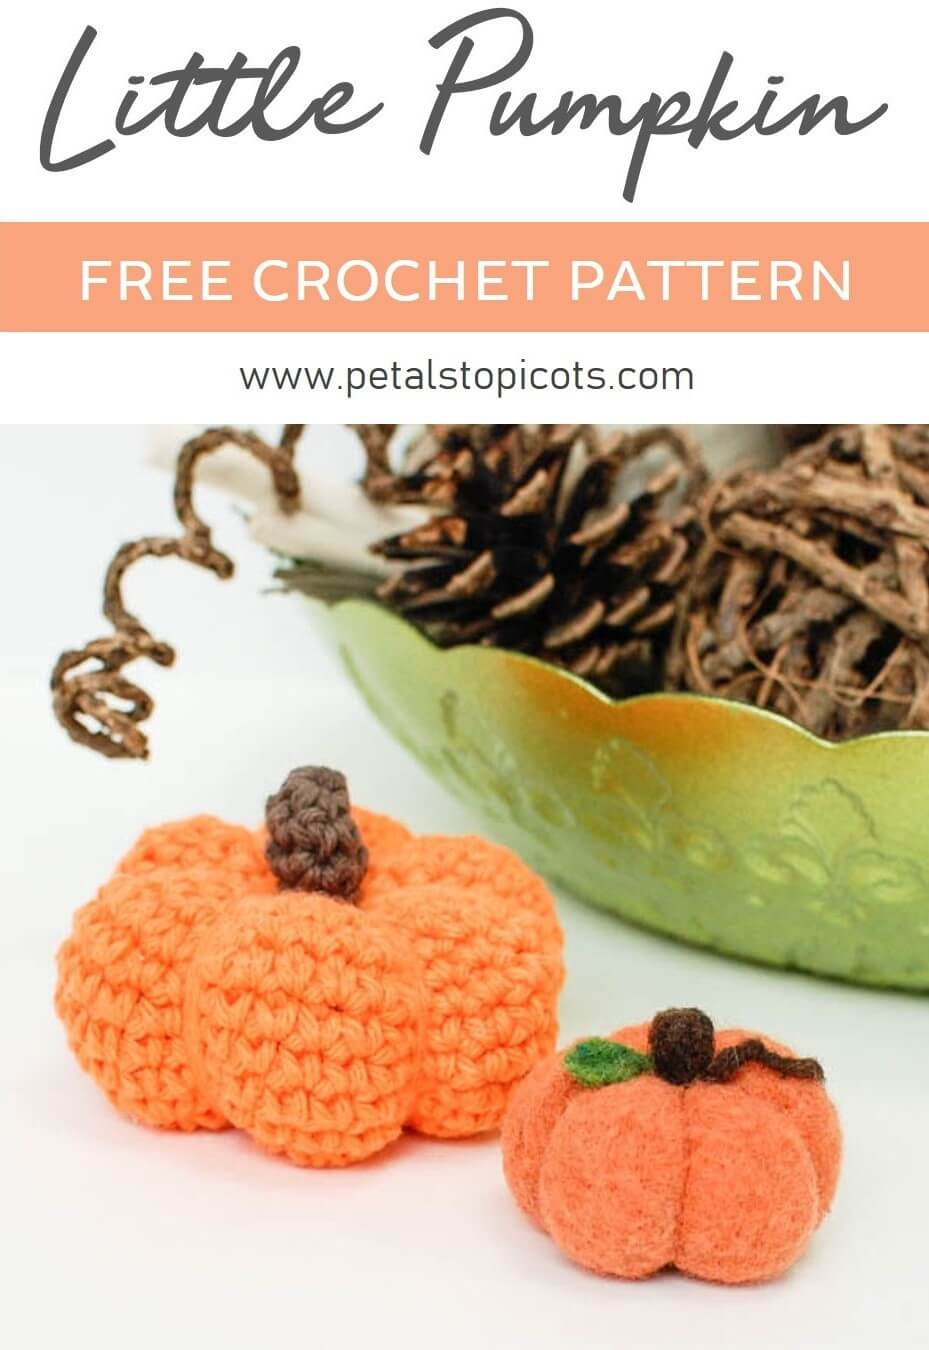 This sweet little pumpkin crochet pattern is perfect for Autumn ... and it's super quick to work up too! #petalstopicots